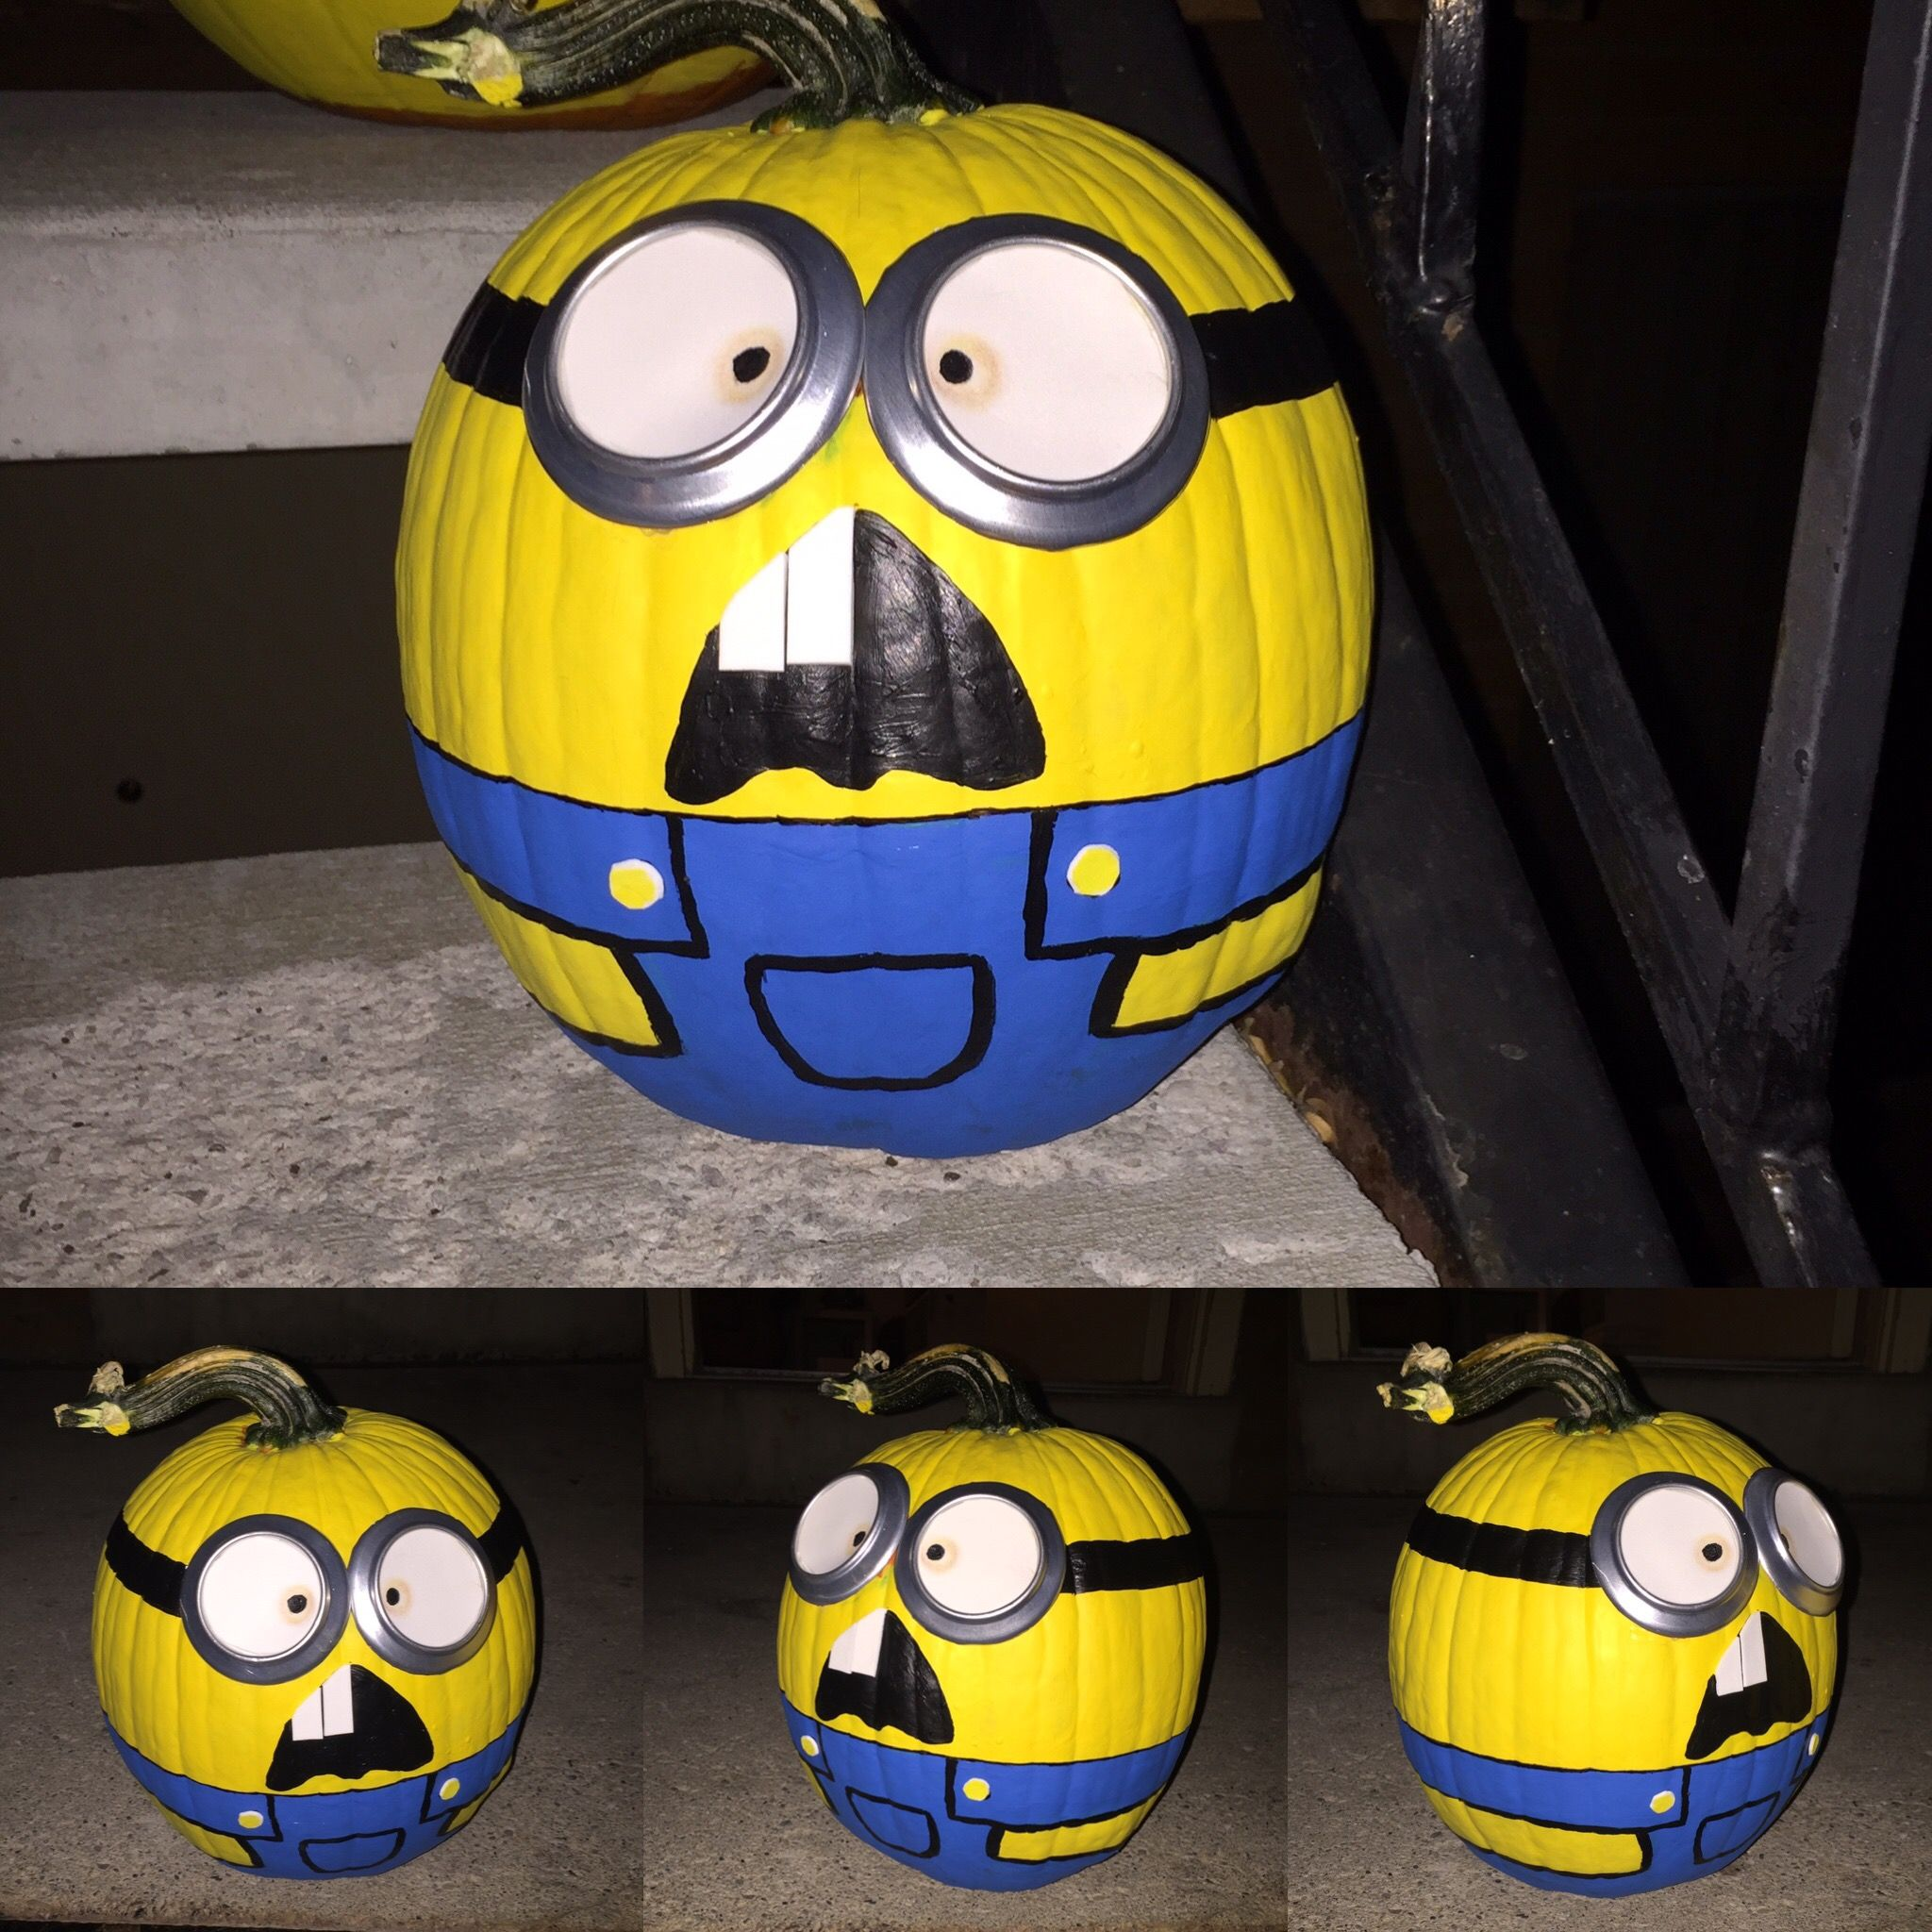 My Minion Pumpkin Painted Overall Yellow First Marked Out Detail With Sharpie Pen And Painted Blue Overall And B With Images Painted Pumpkins Minion Pumpkin Sharpie Pens